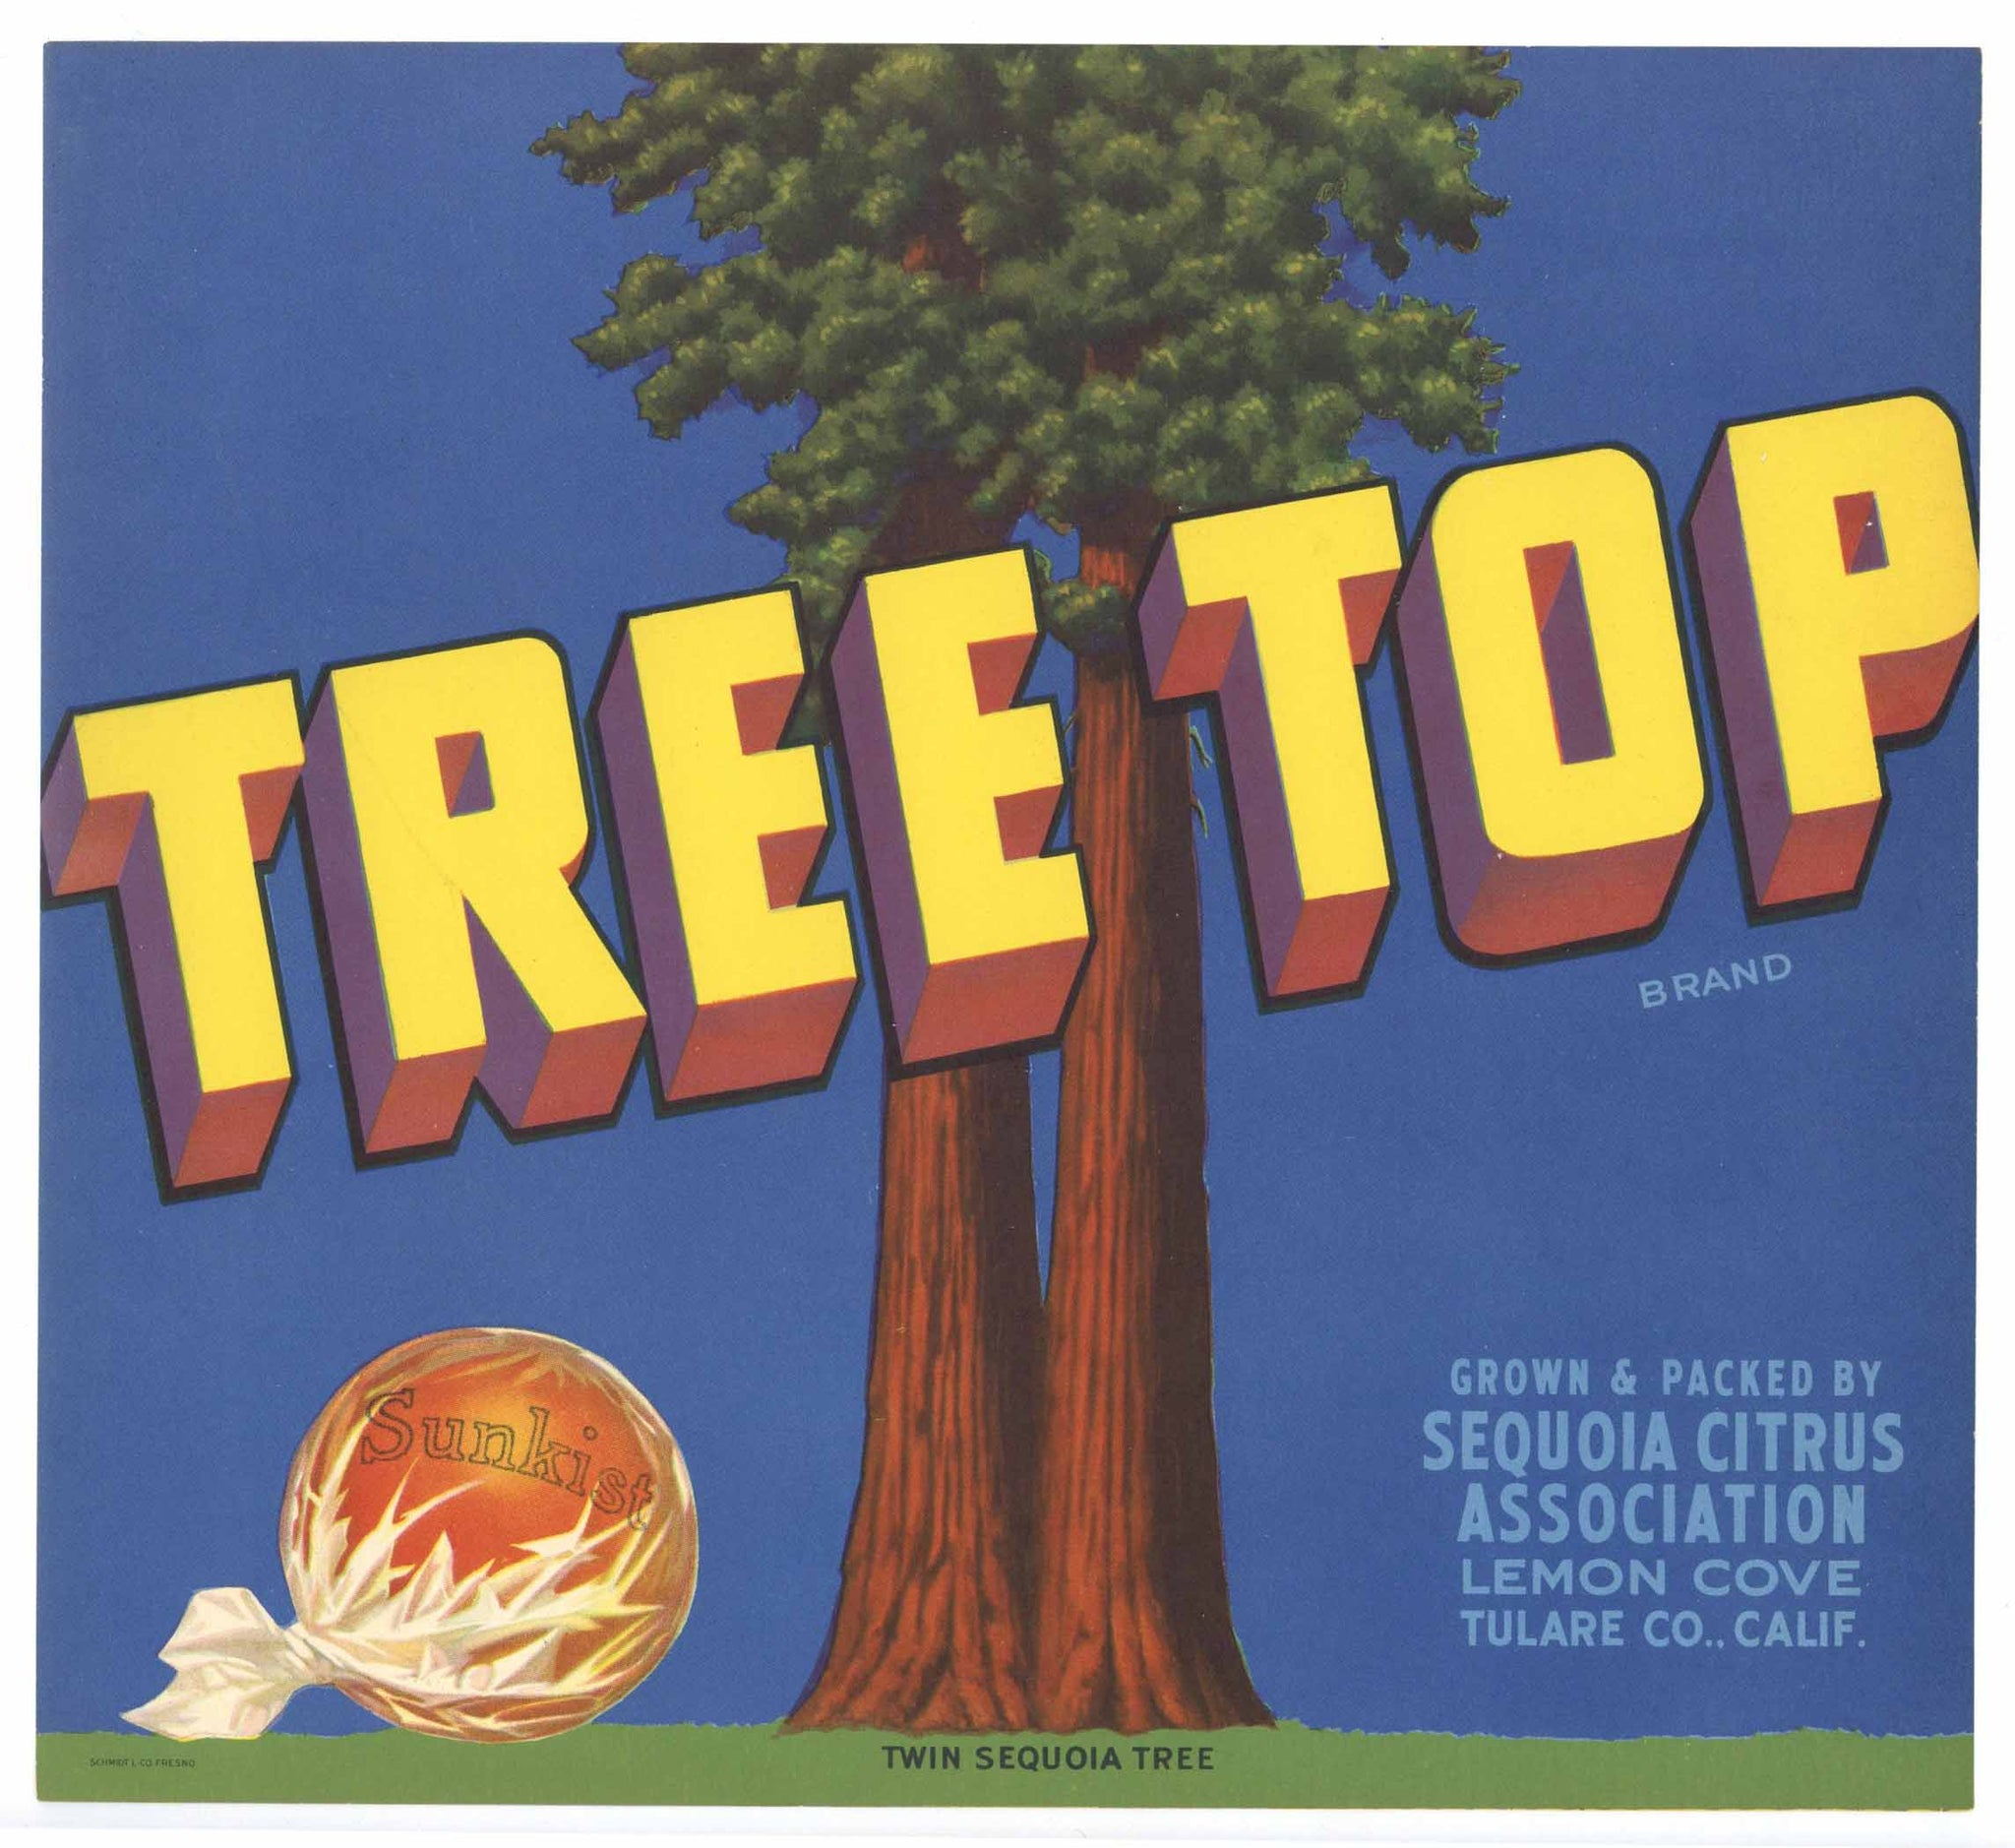 Tree Top Brand Vintage Orange Crate Label